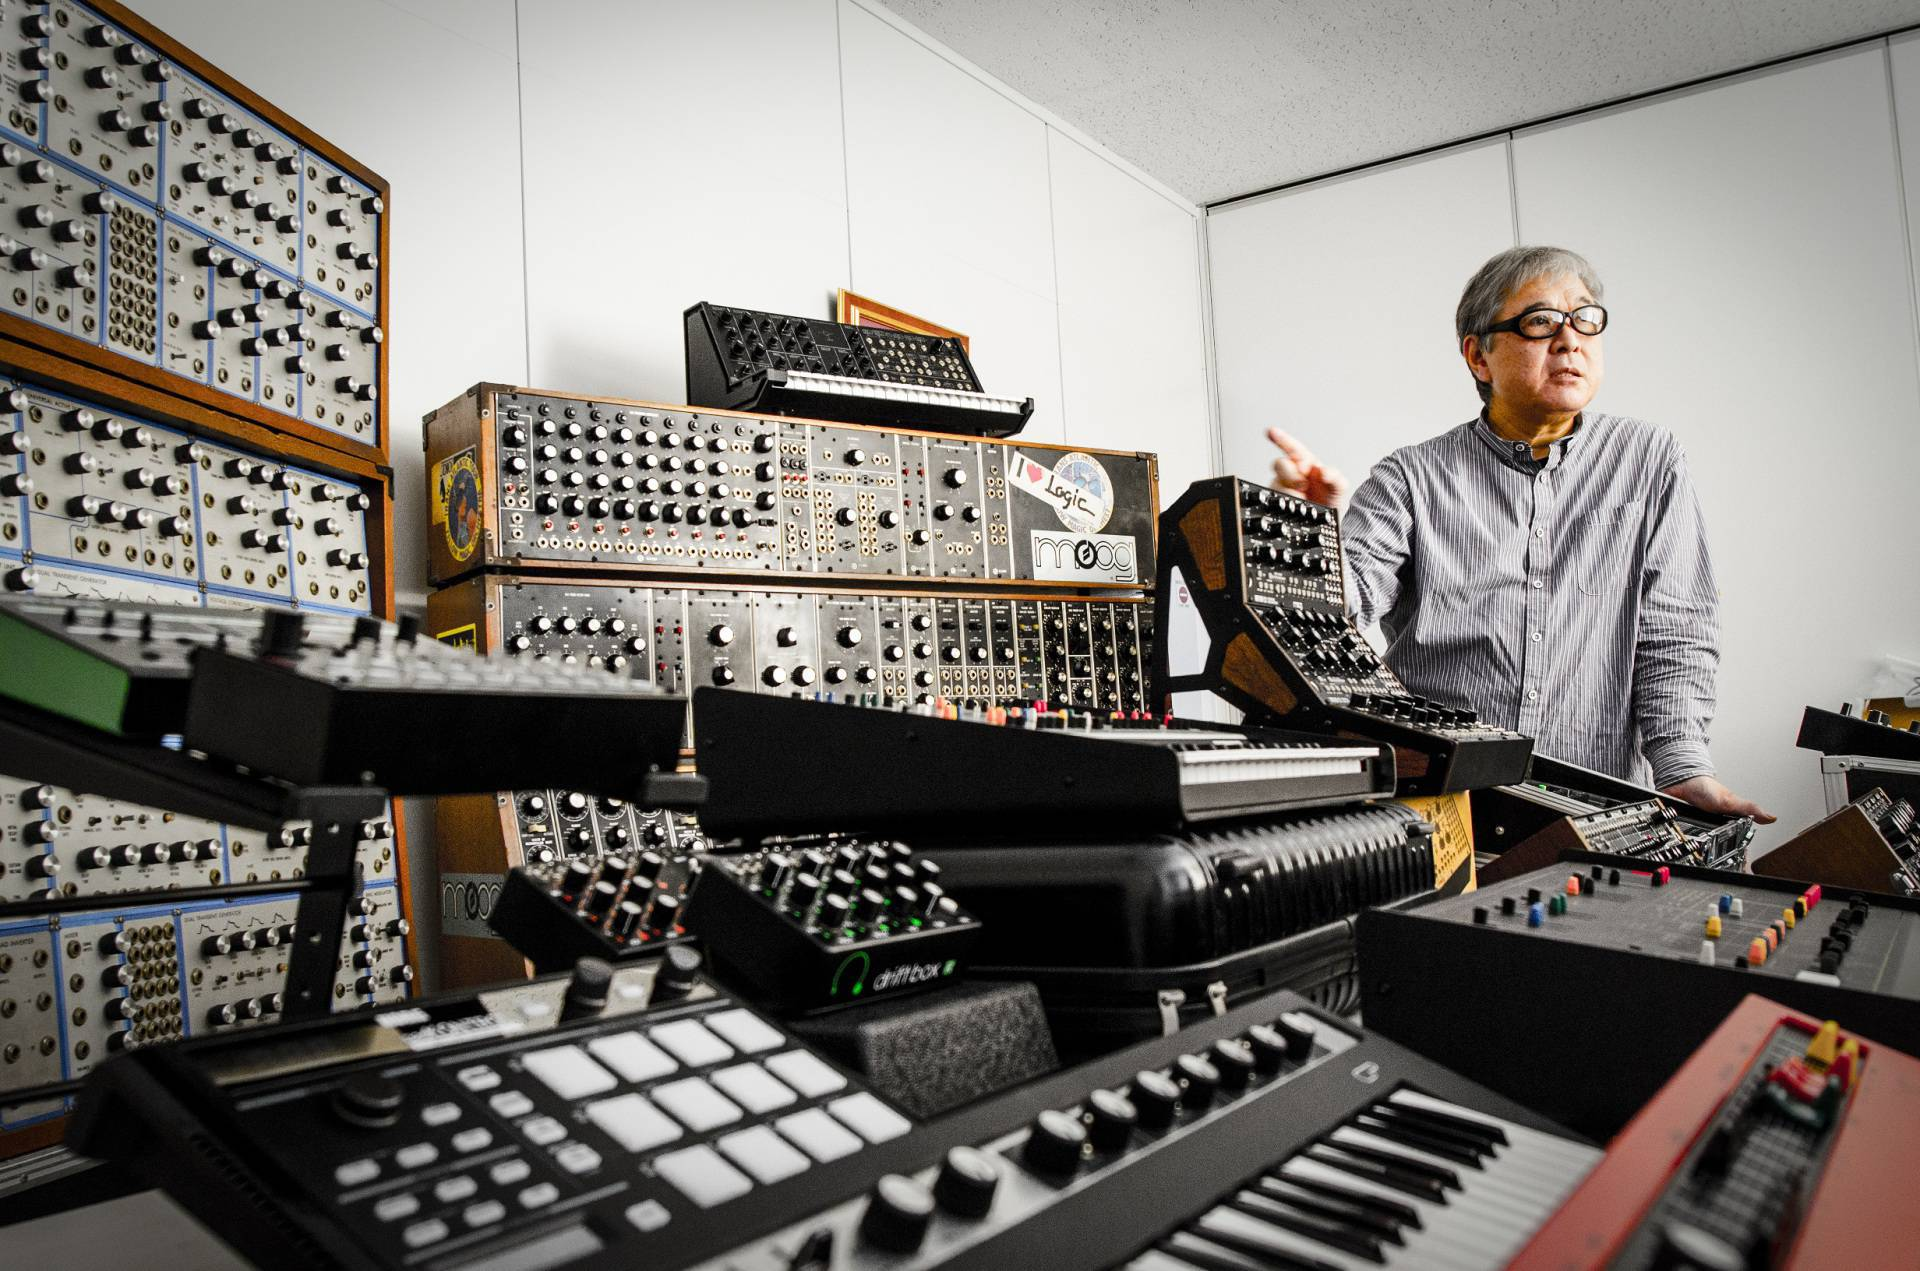 Machines unmasked: Hideki Matsutake from the Yellow Magic Orchestra